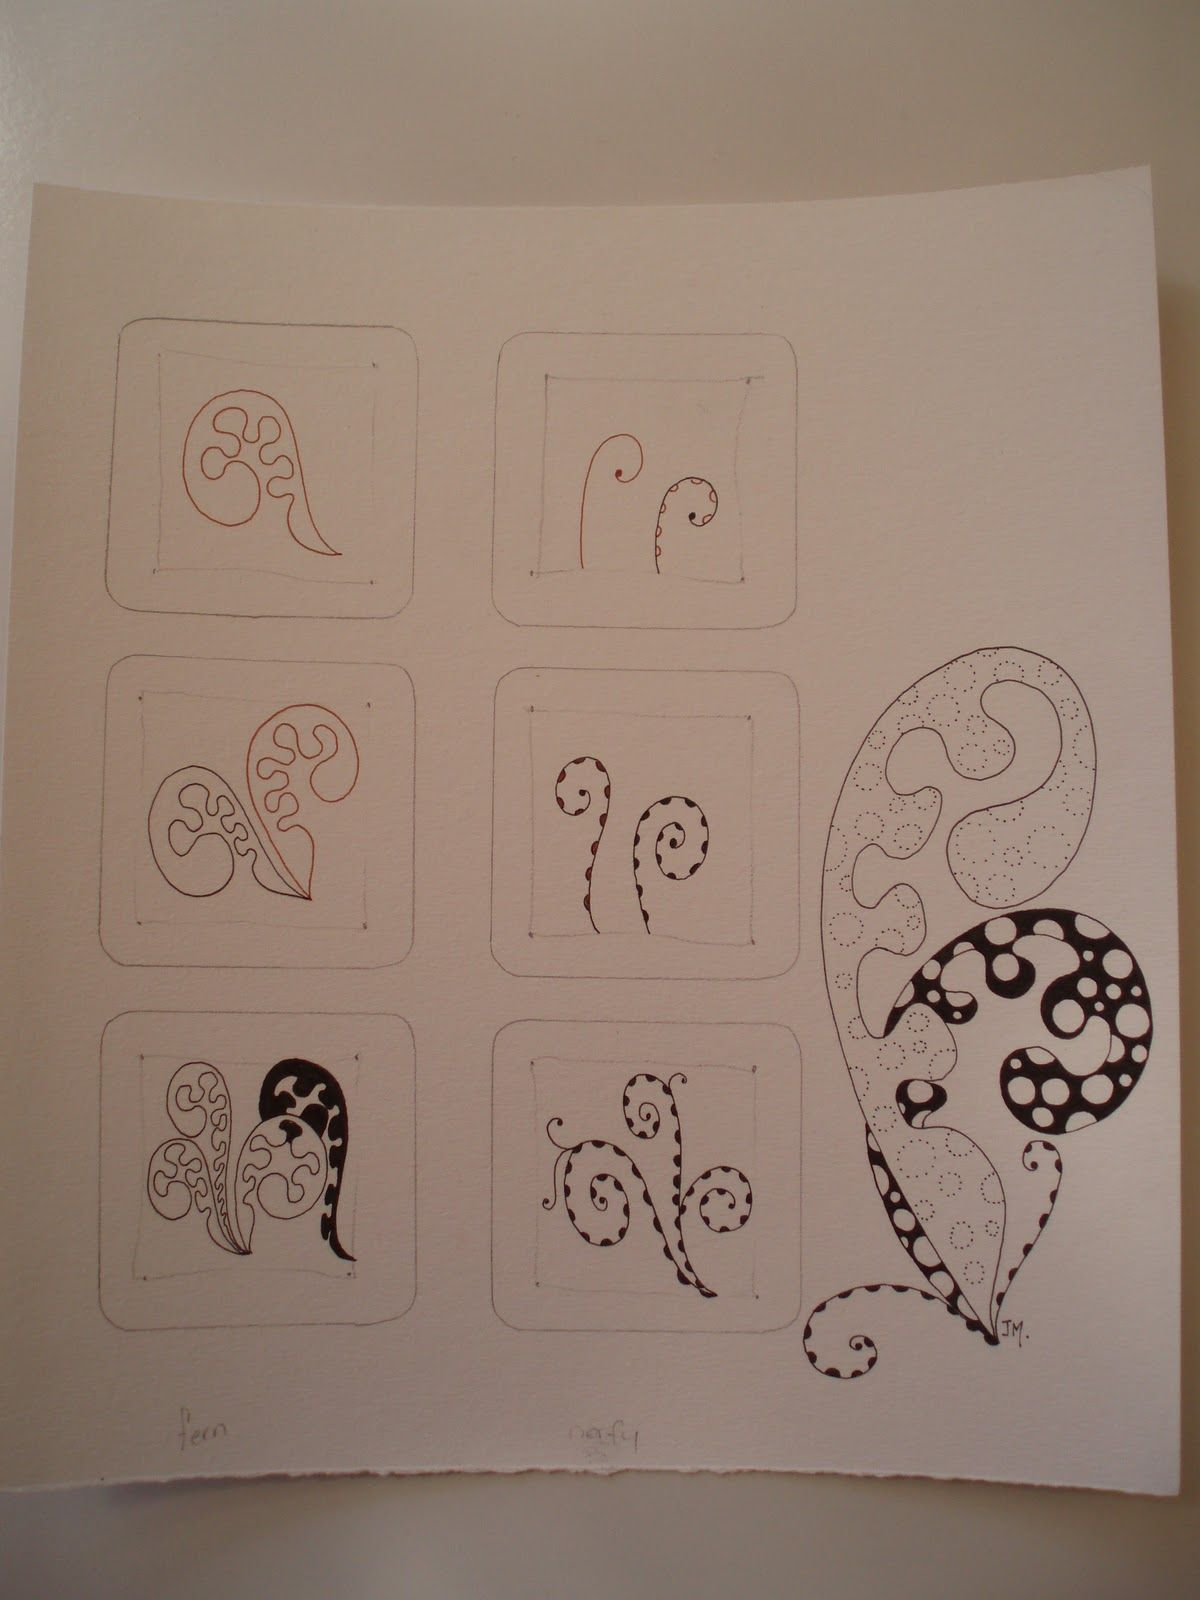 Zentangle pattern - fills space the same way Mooka does but with a